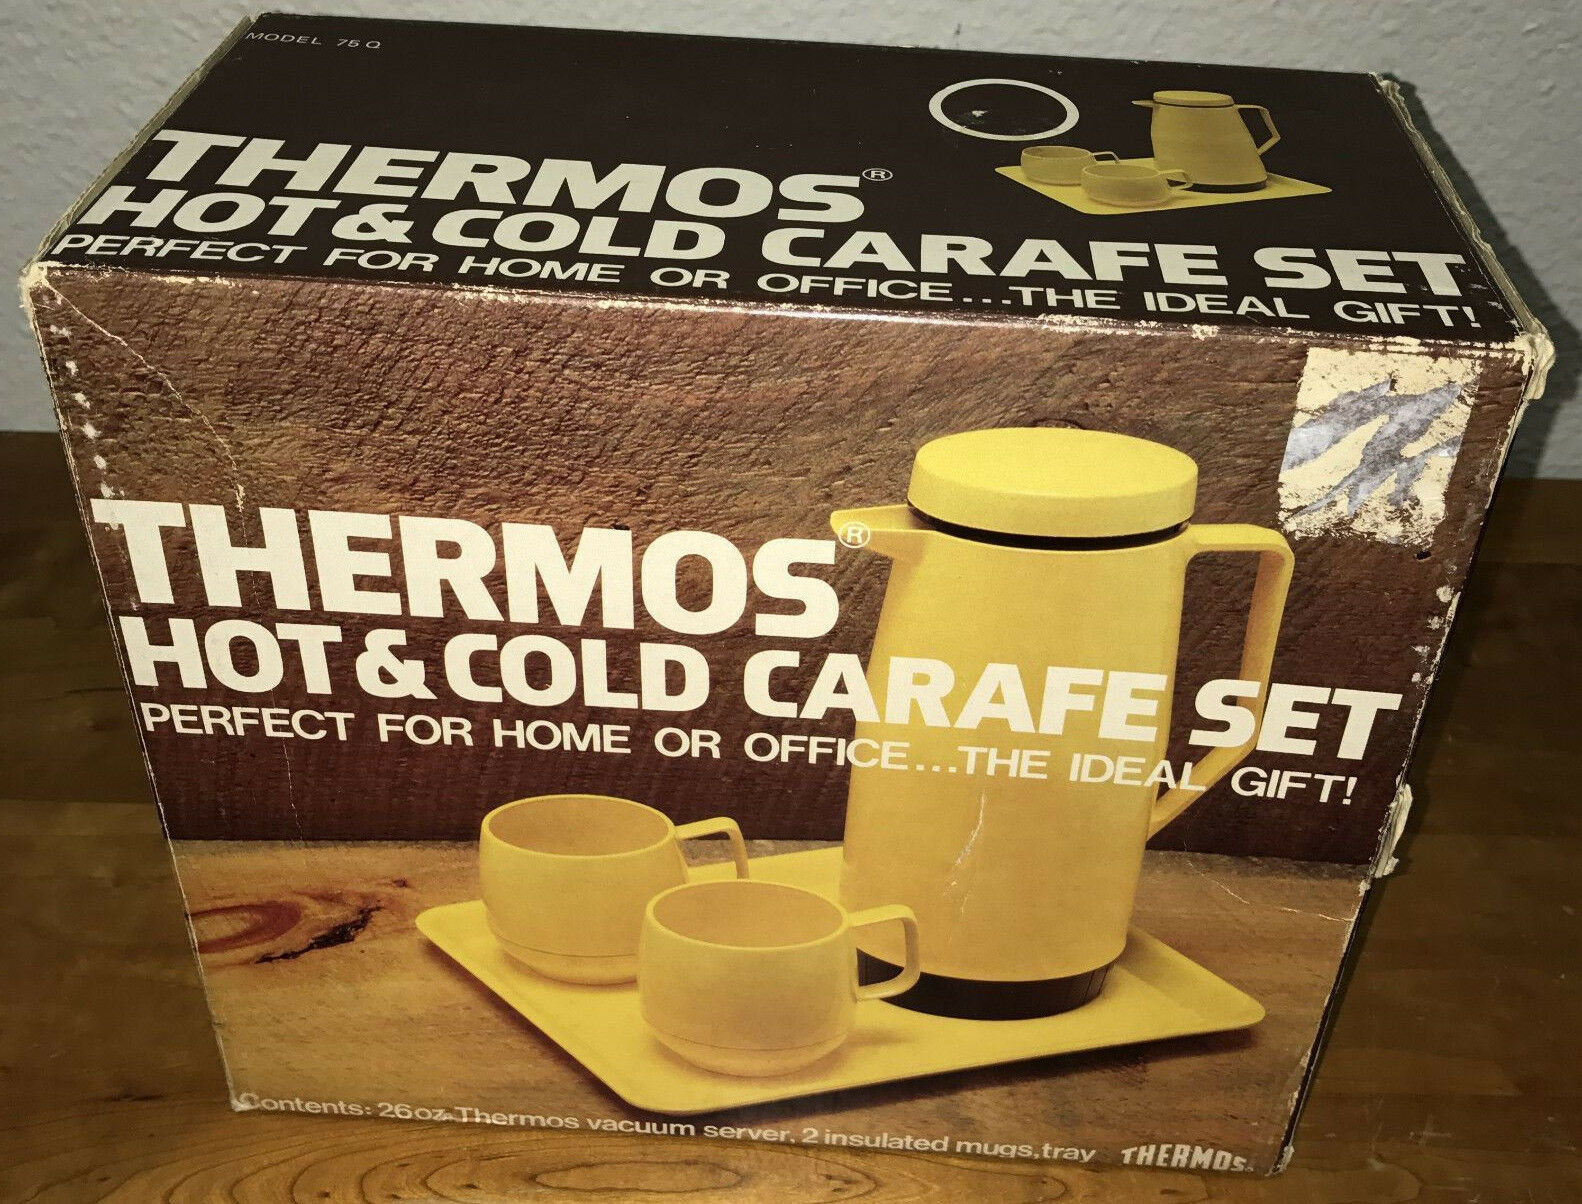 NEW Vtg Thermos Hot & Cold Carafe Set Unused Yellow 75Q 1977 King-Seeley